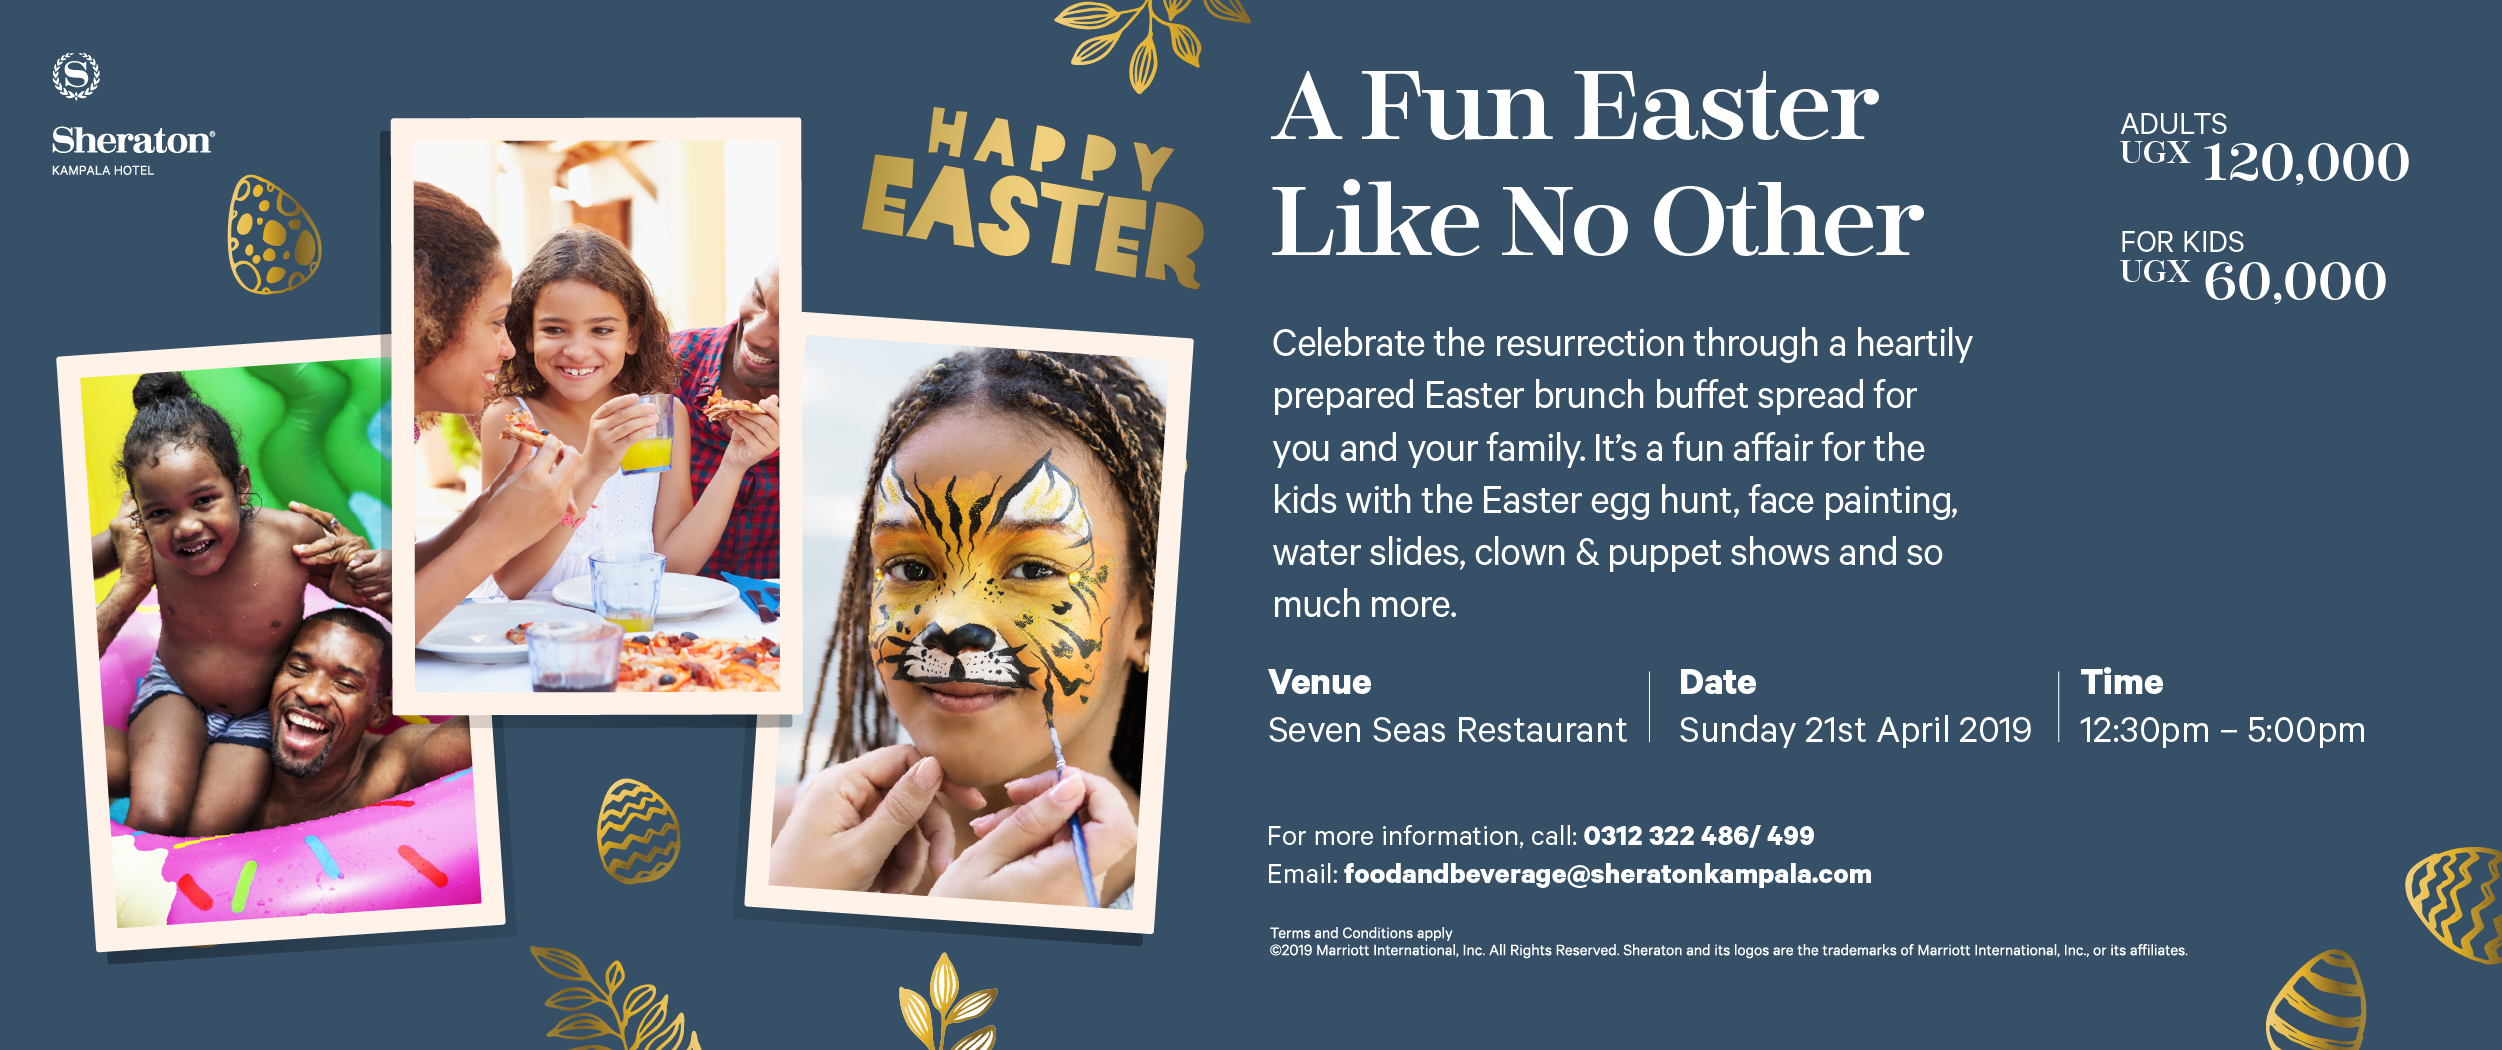 Easter is heading your way ... are you ready to celebrate?